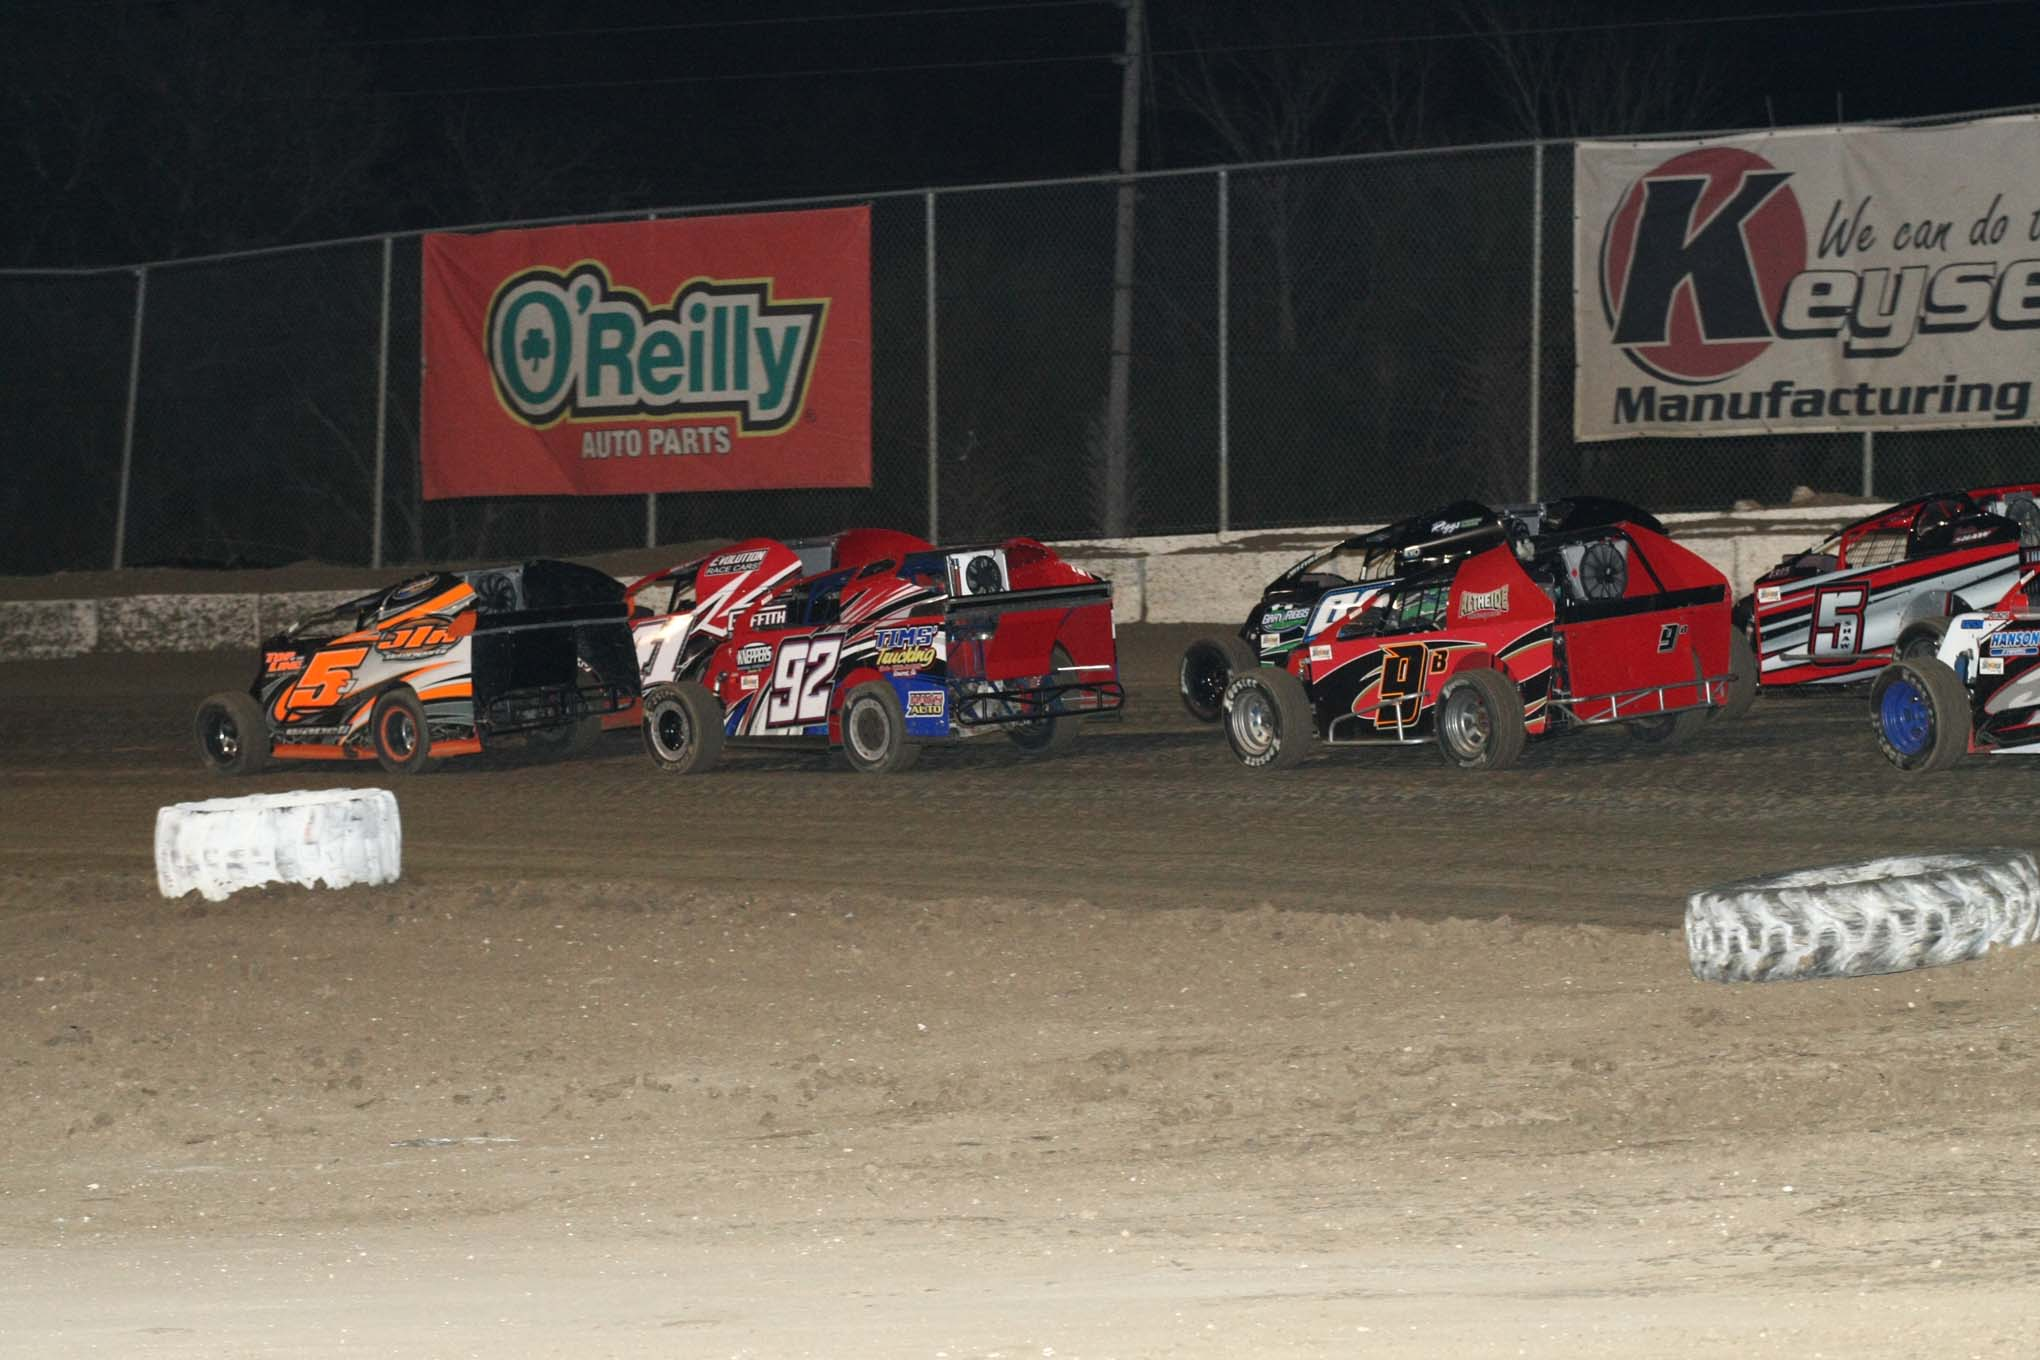 A full field of Mod Lites line up for their feature at Bubba Raceway Park in Ocala, Florida.